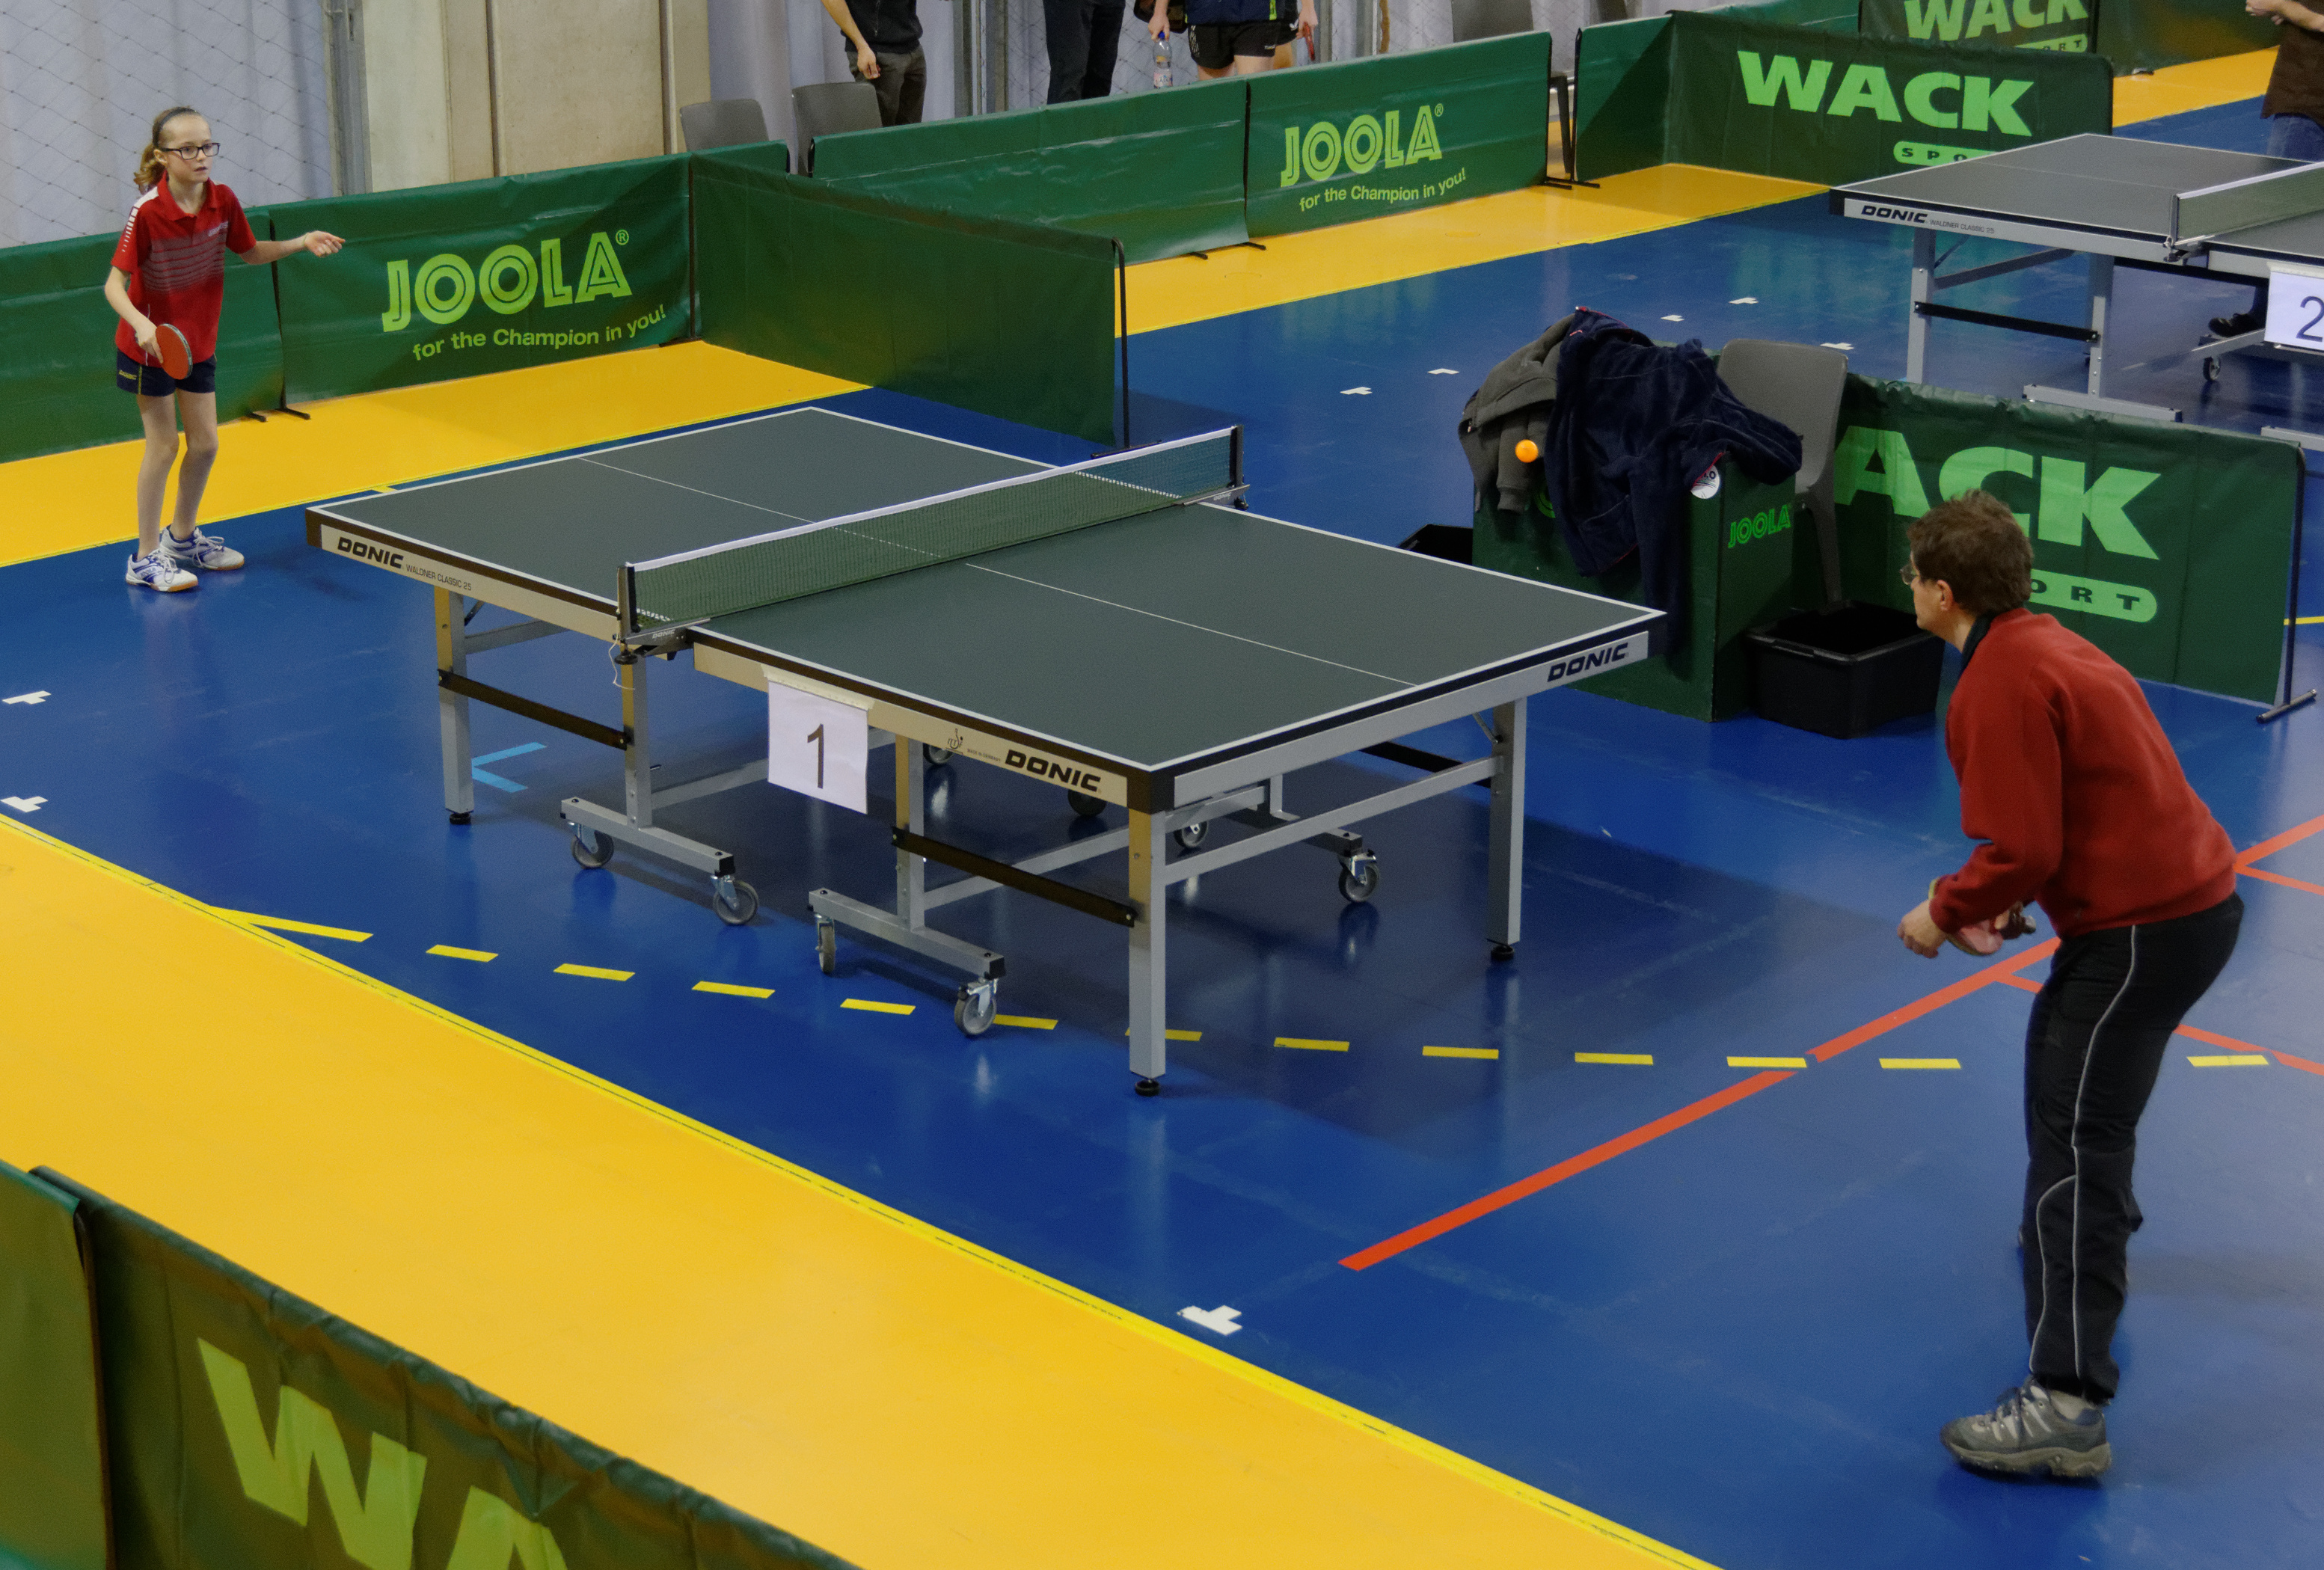 Wack Sport Tennis De Table File 2016 02 07 13 26 19 Ping Pong Belfort Jpg Wikimedia Commons